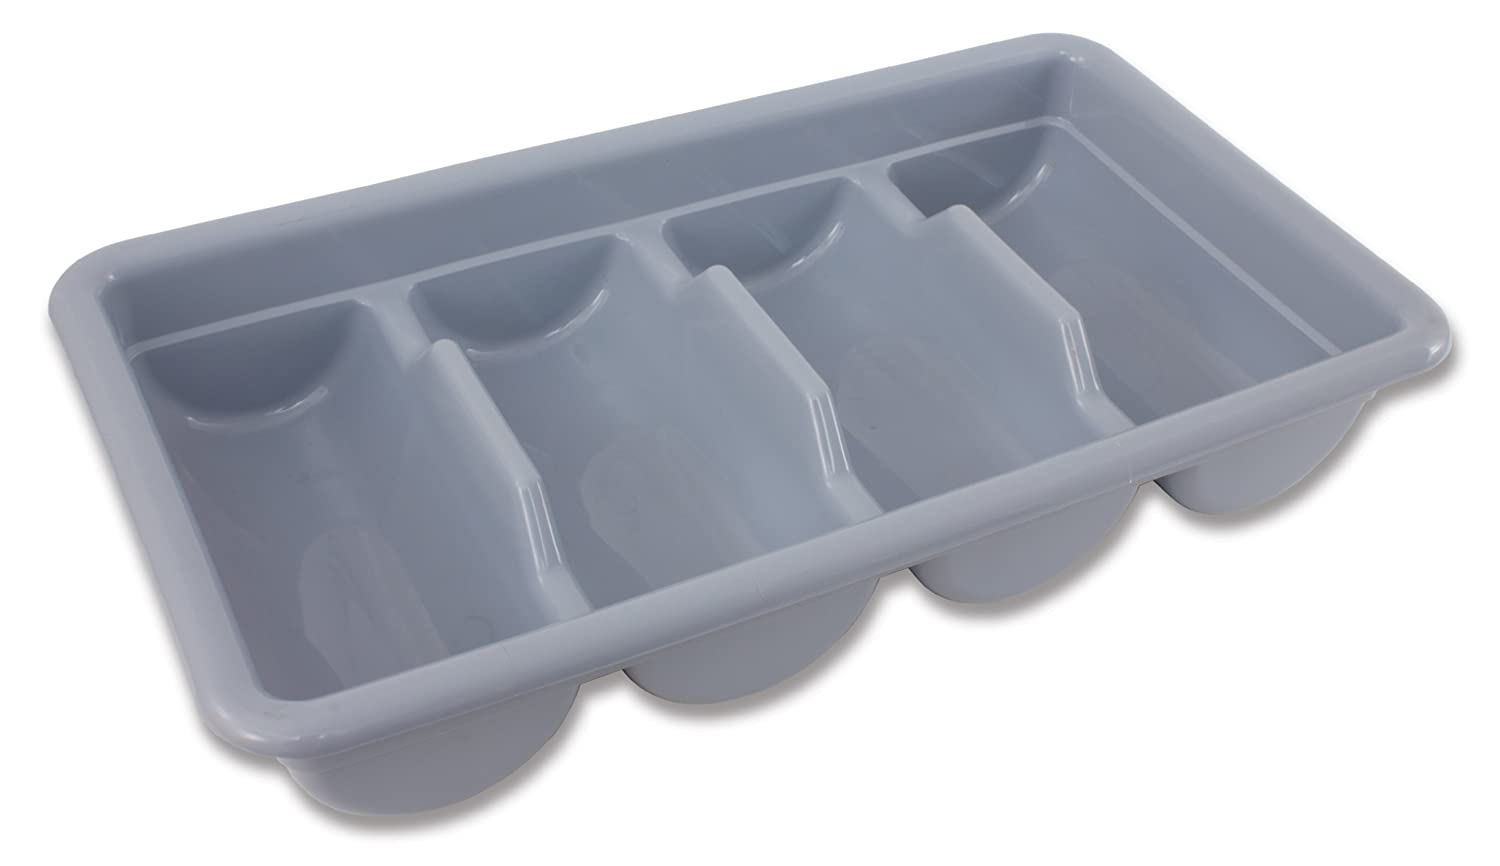 Plastic Construction Crestware 4 Compartment Grey Cutlery Box 17-Inch by 10-1//2 inch by 3-3//4-Inch Stainless Steel Look